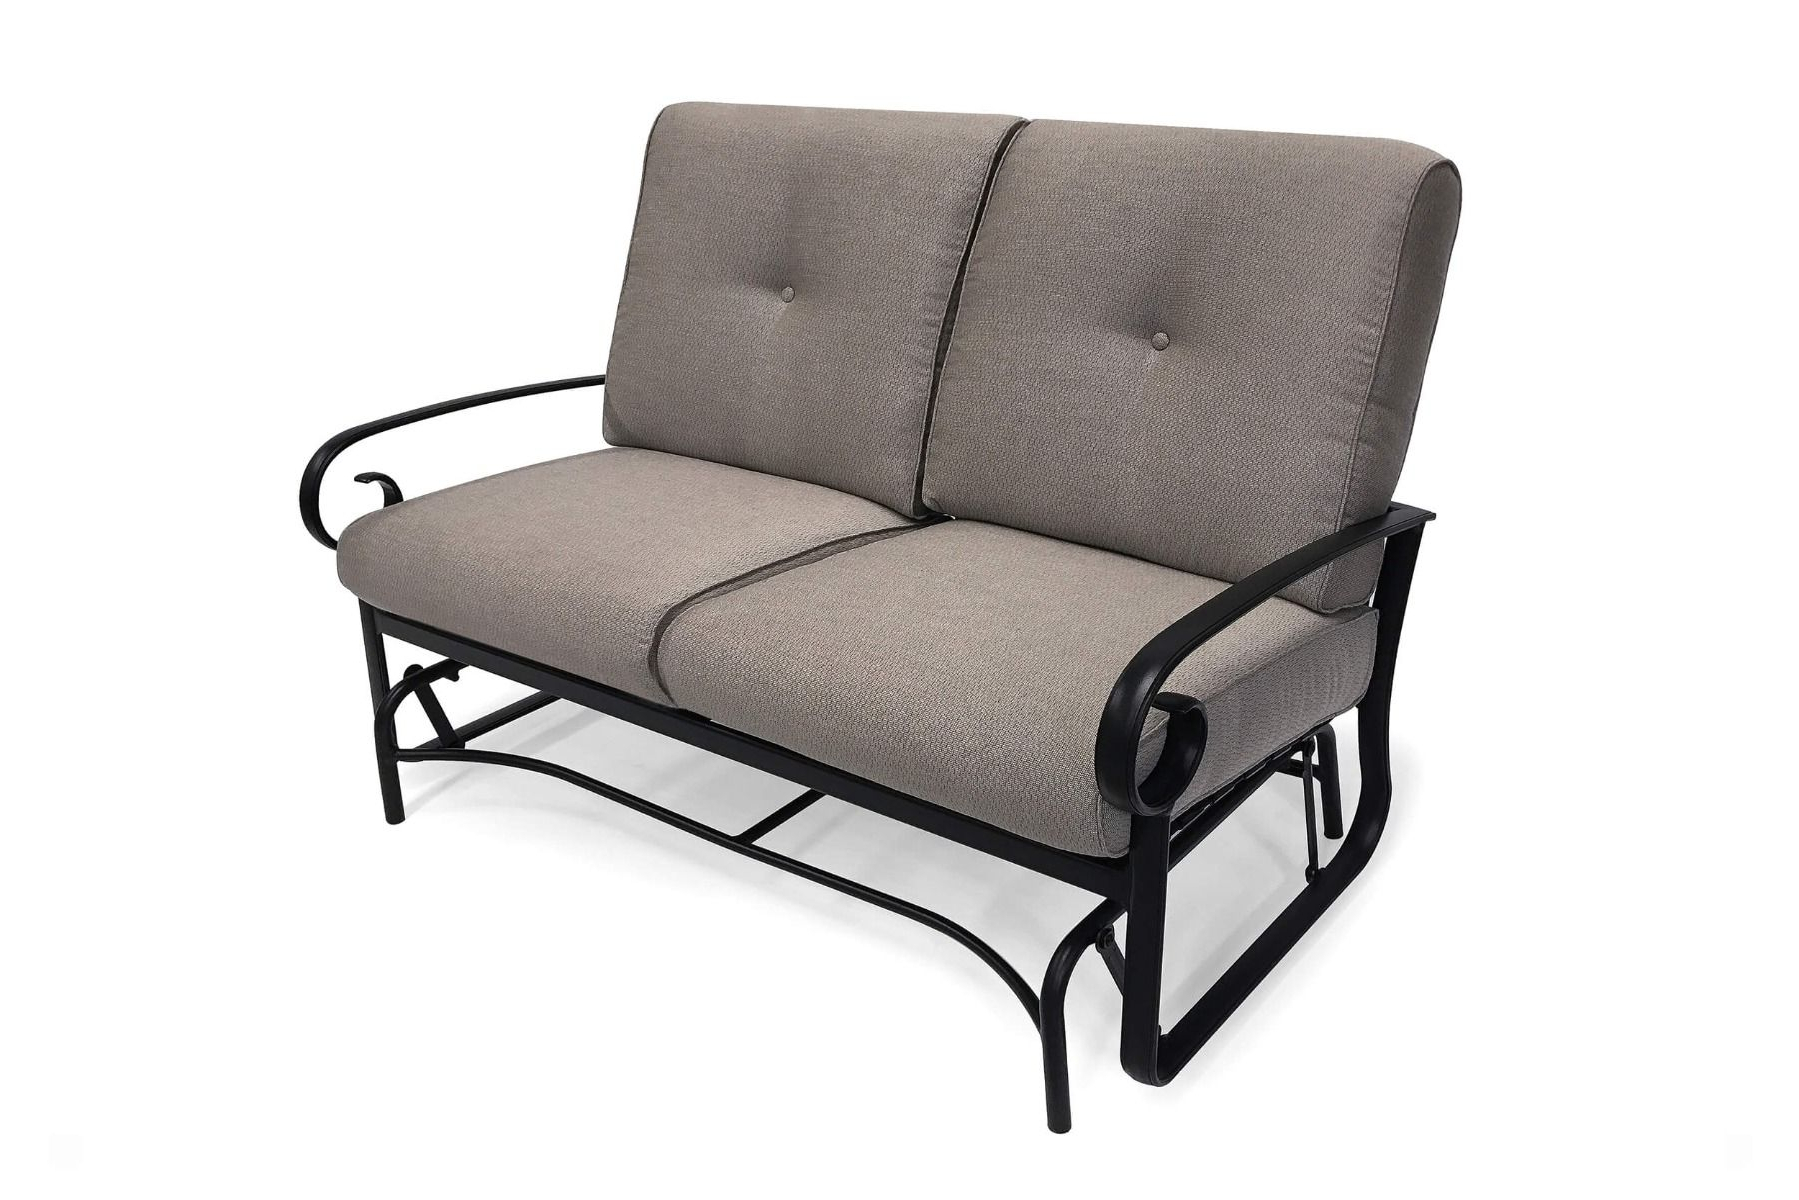 Veneto Cushion Loveseat Glider Regarding 2020 Outdoor Loveseat Gliders With Cushion (View 16 of 25)